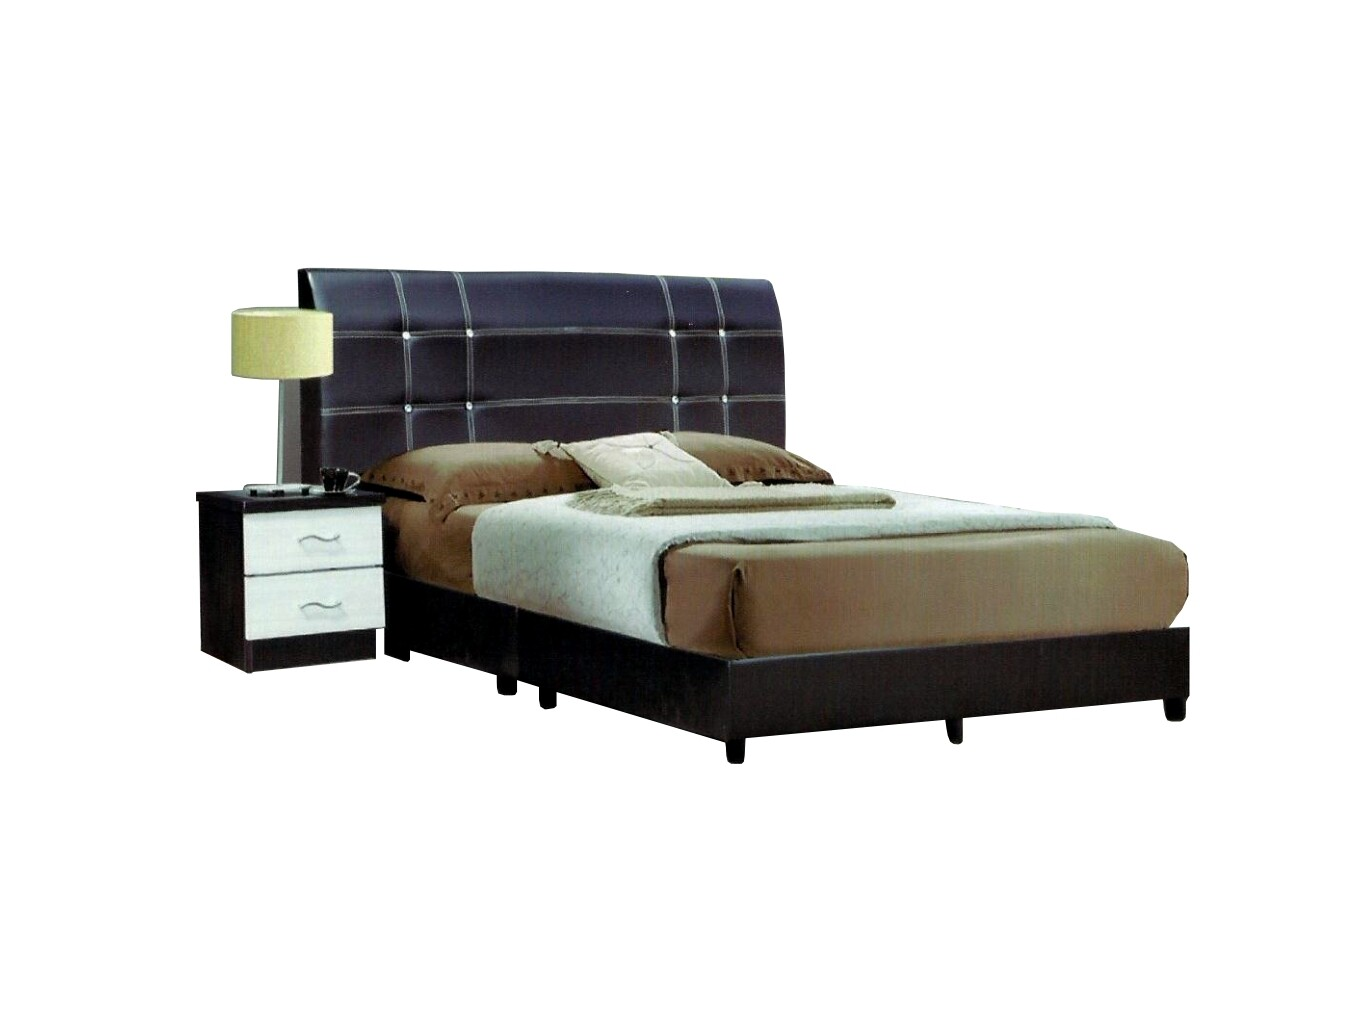 PVC Divan Bed - Queen Size